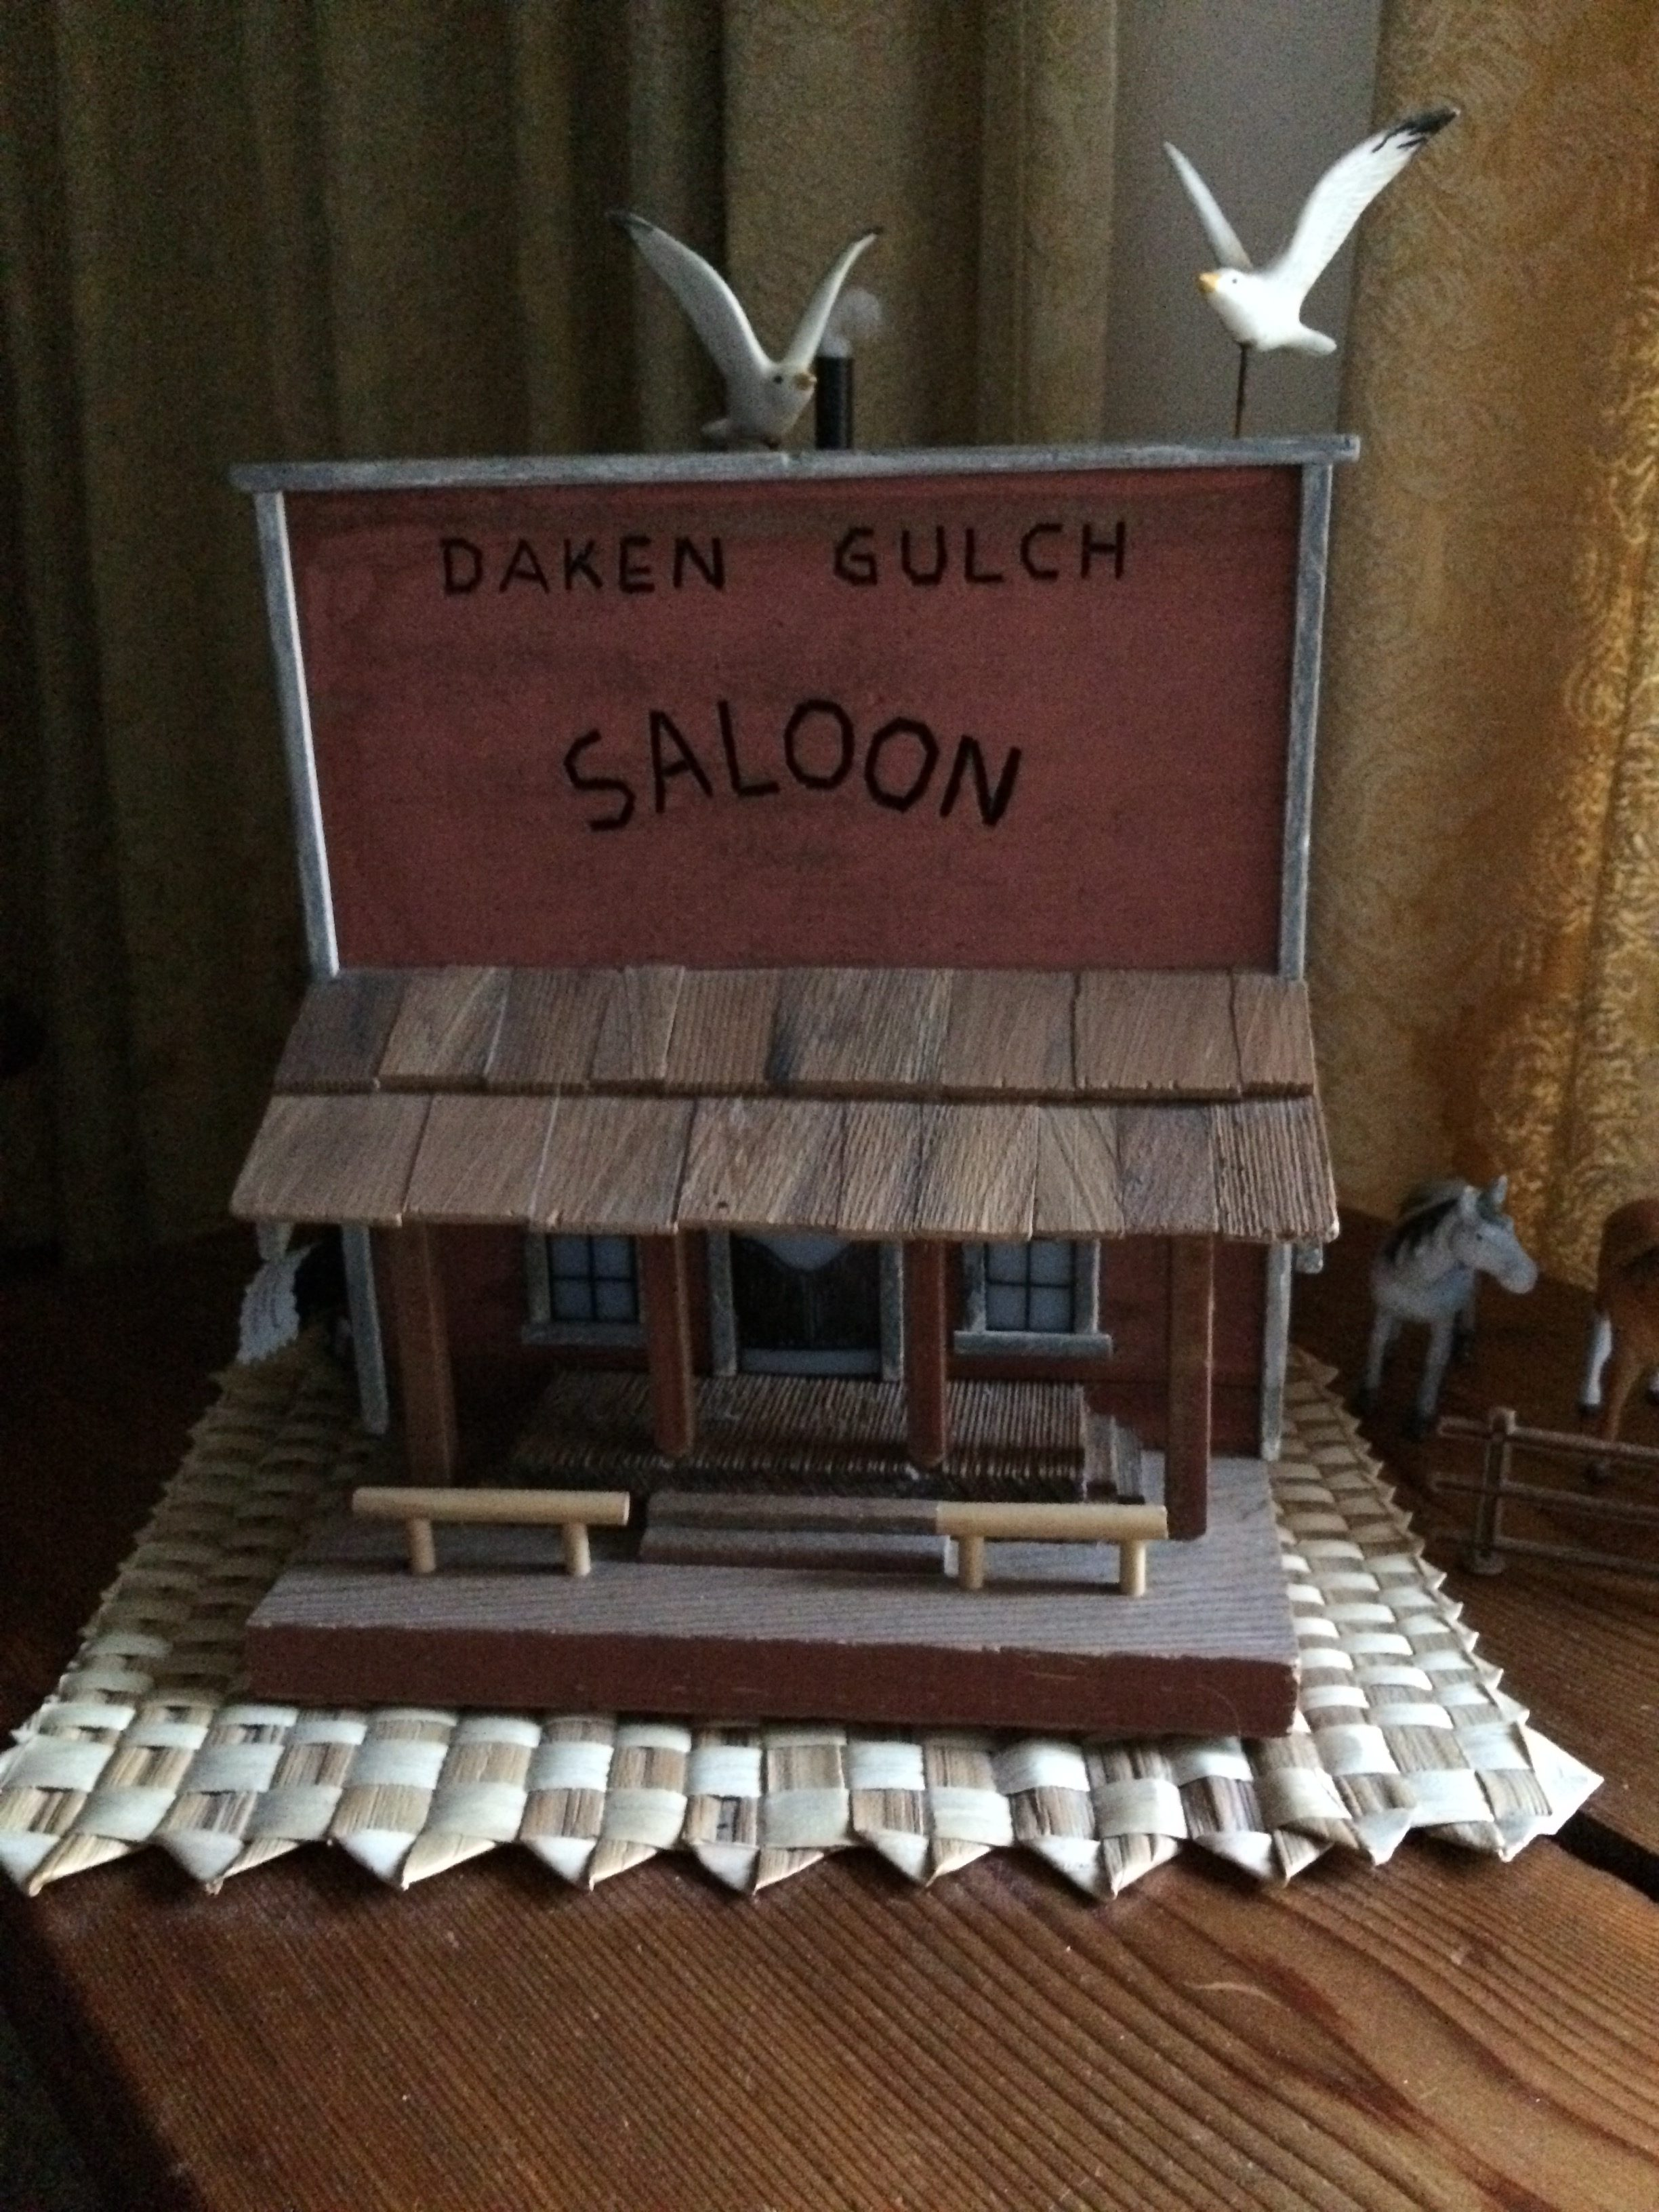 DAKEN Saloon - bird house creation